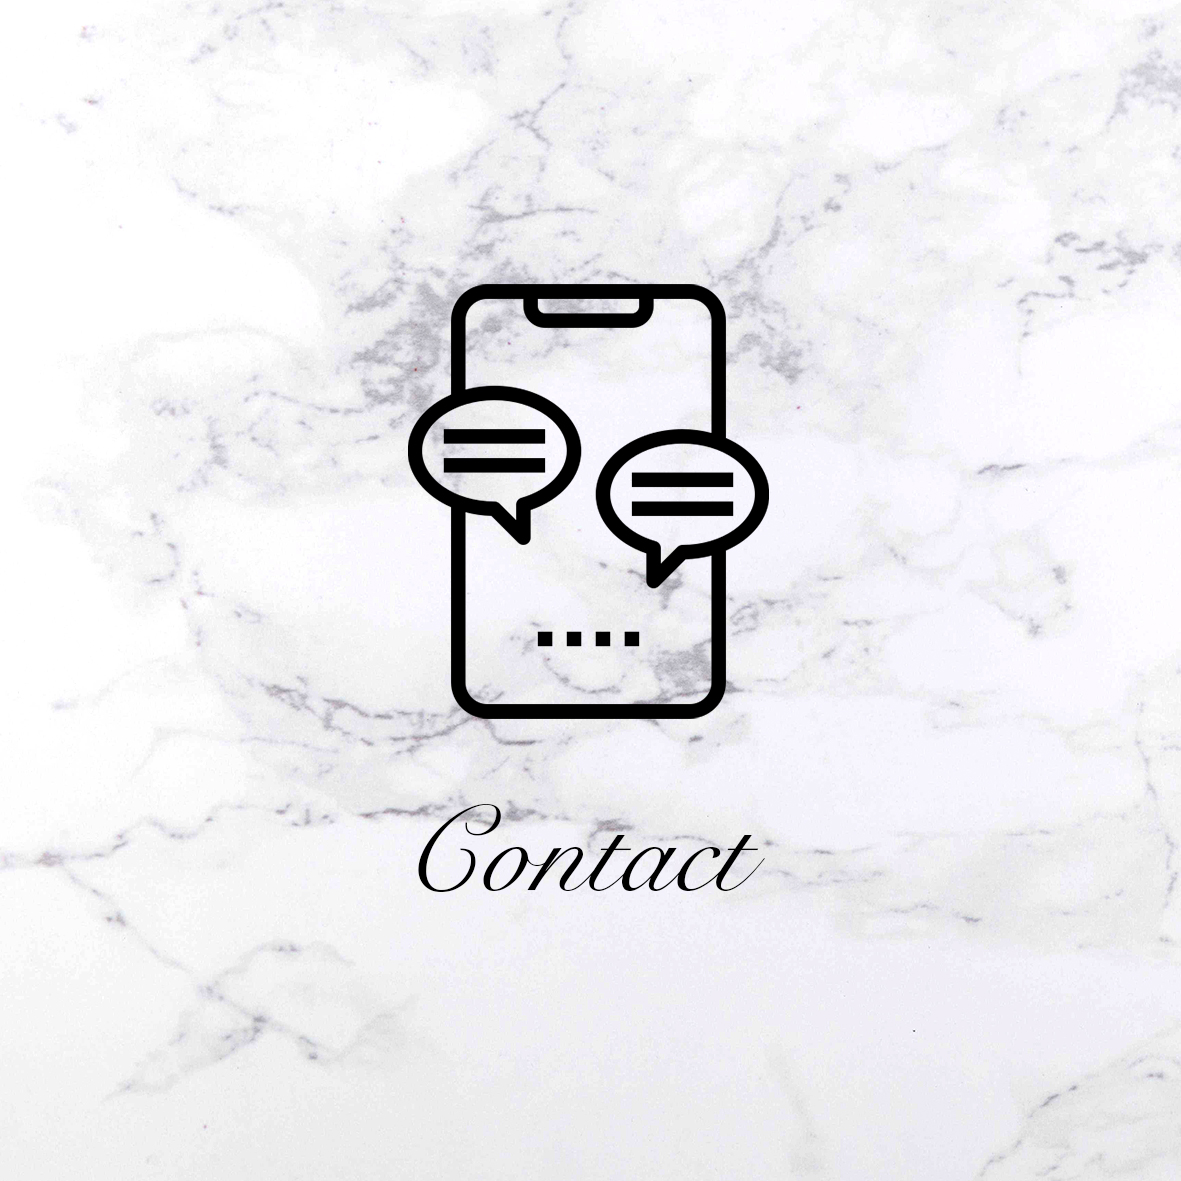 CARRE CONTACT.jpg